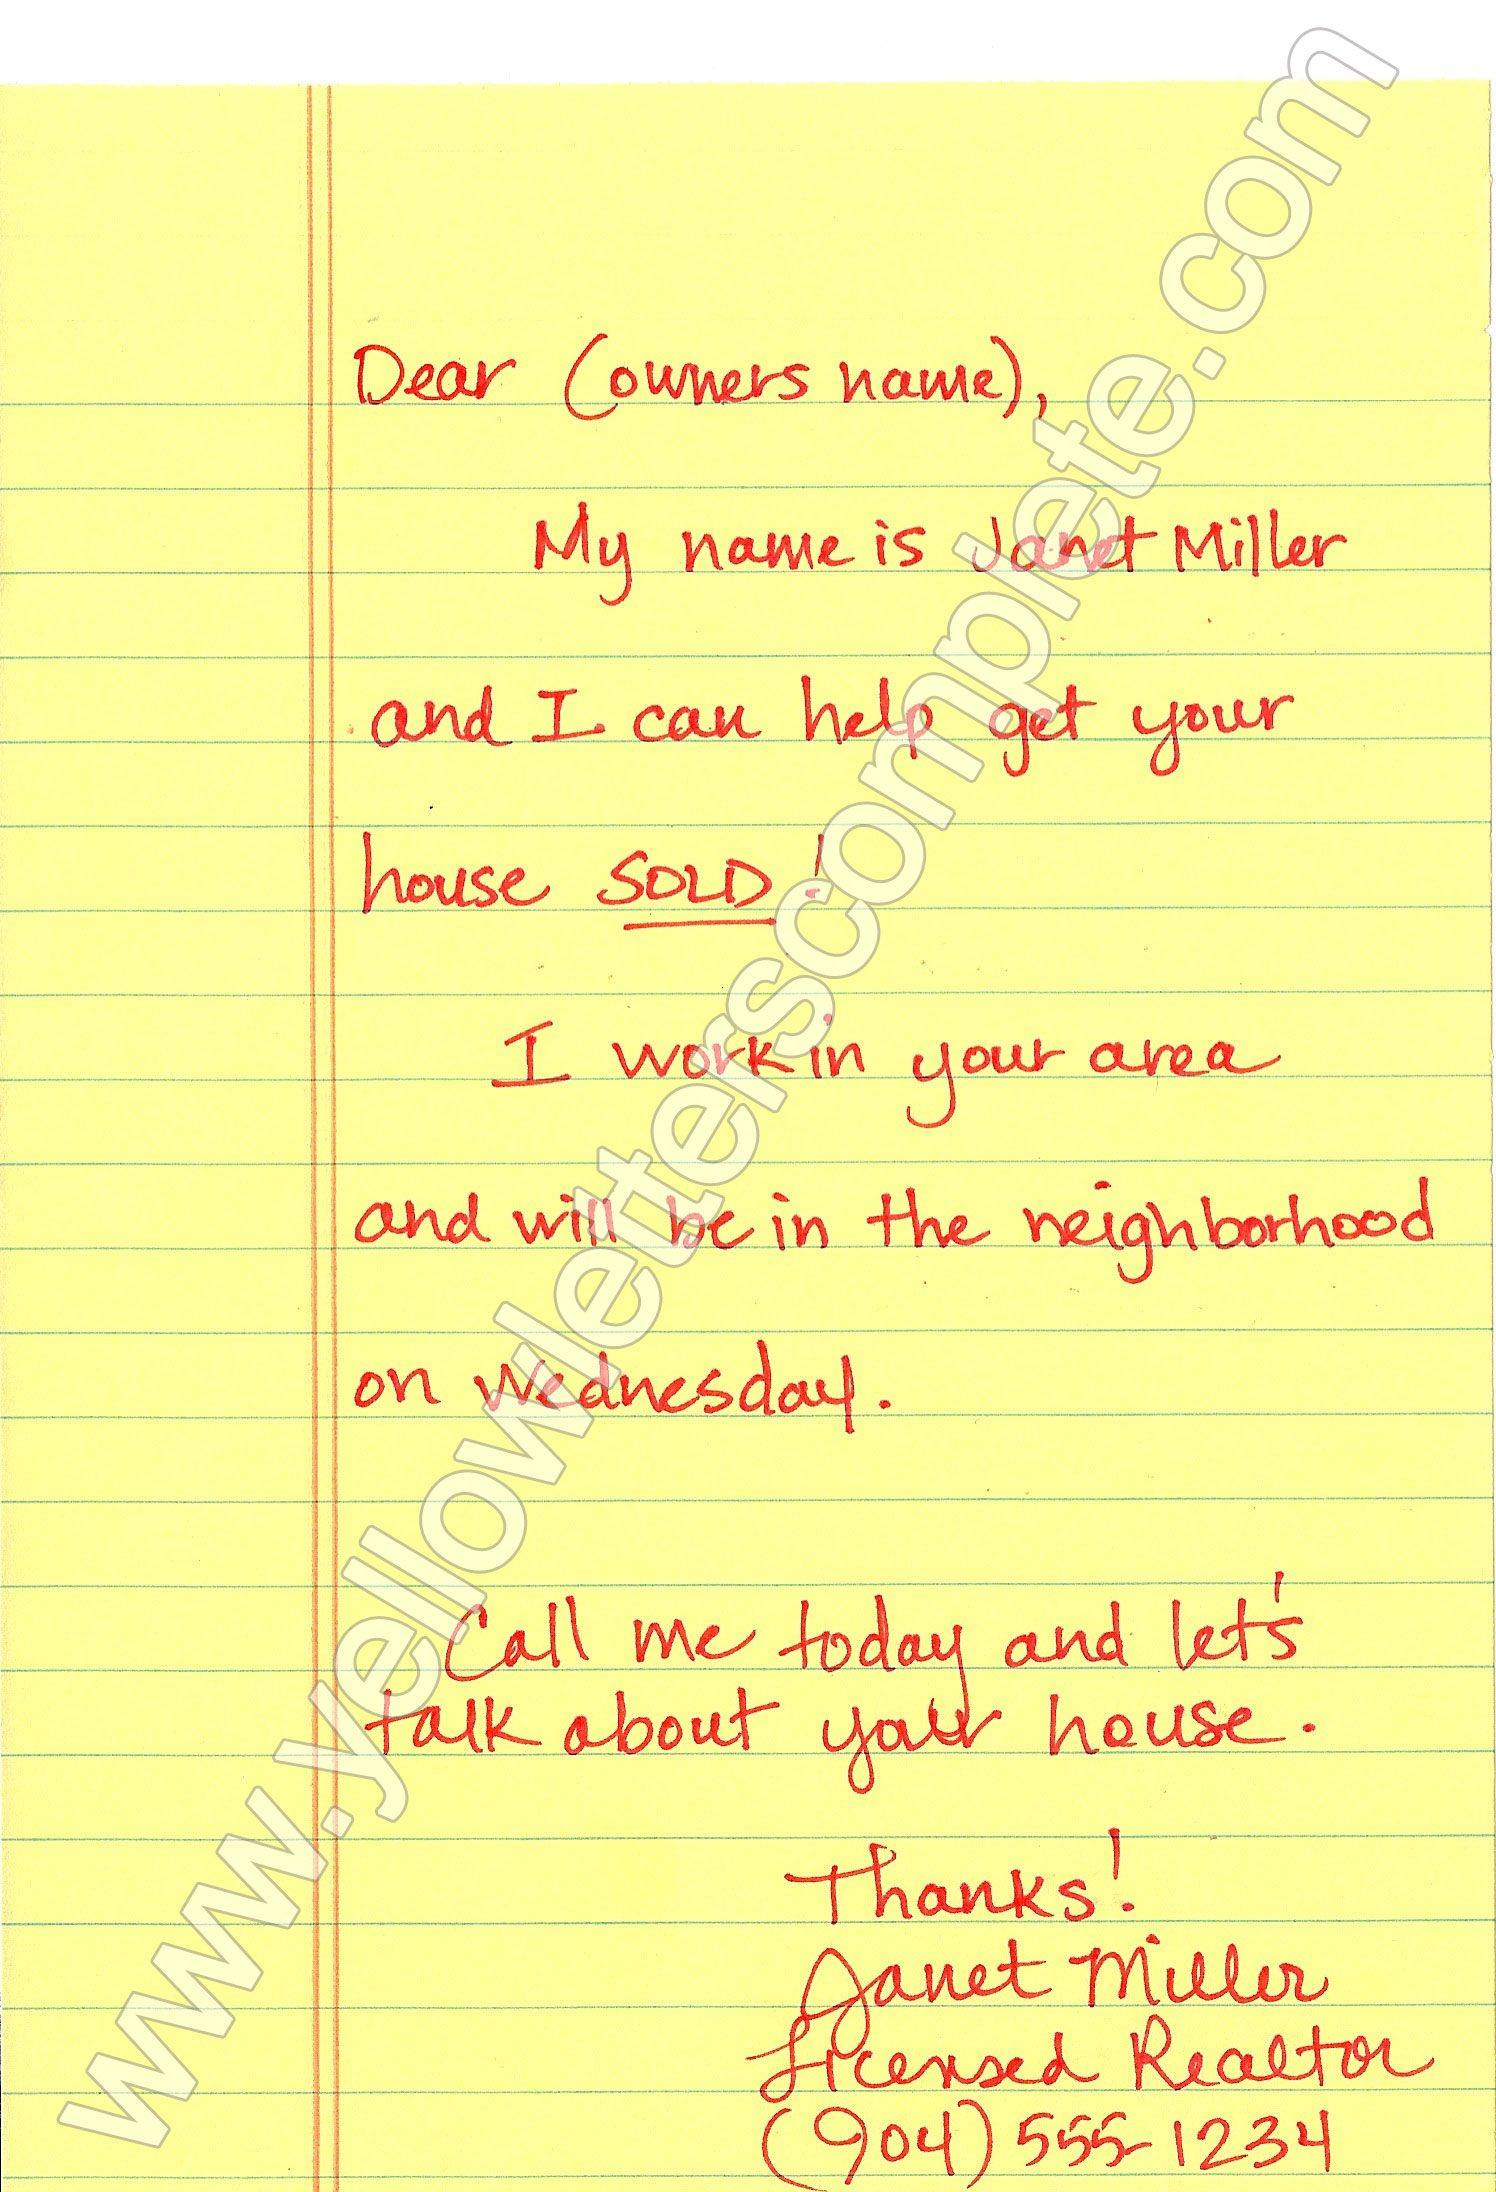 Real Estate Marketing Letter Templates